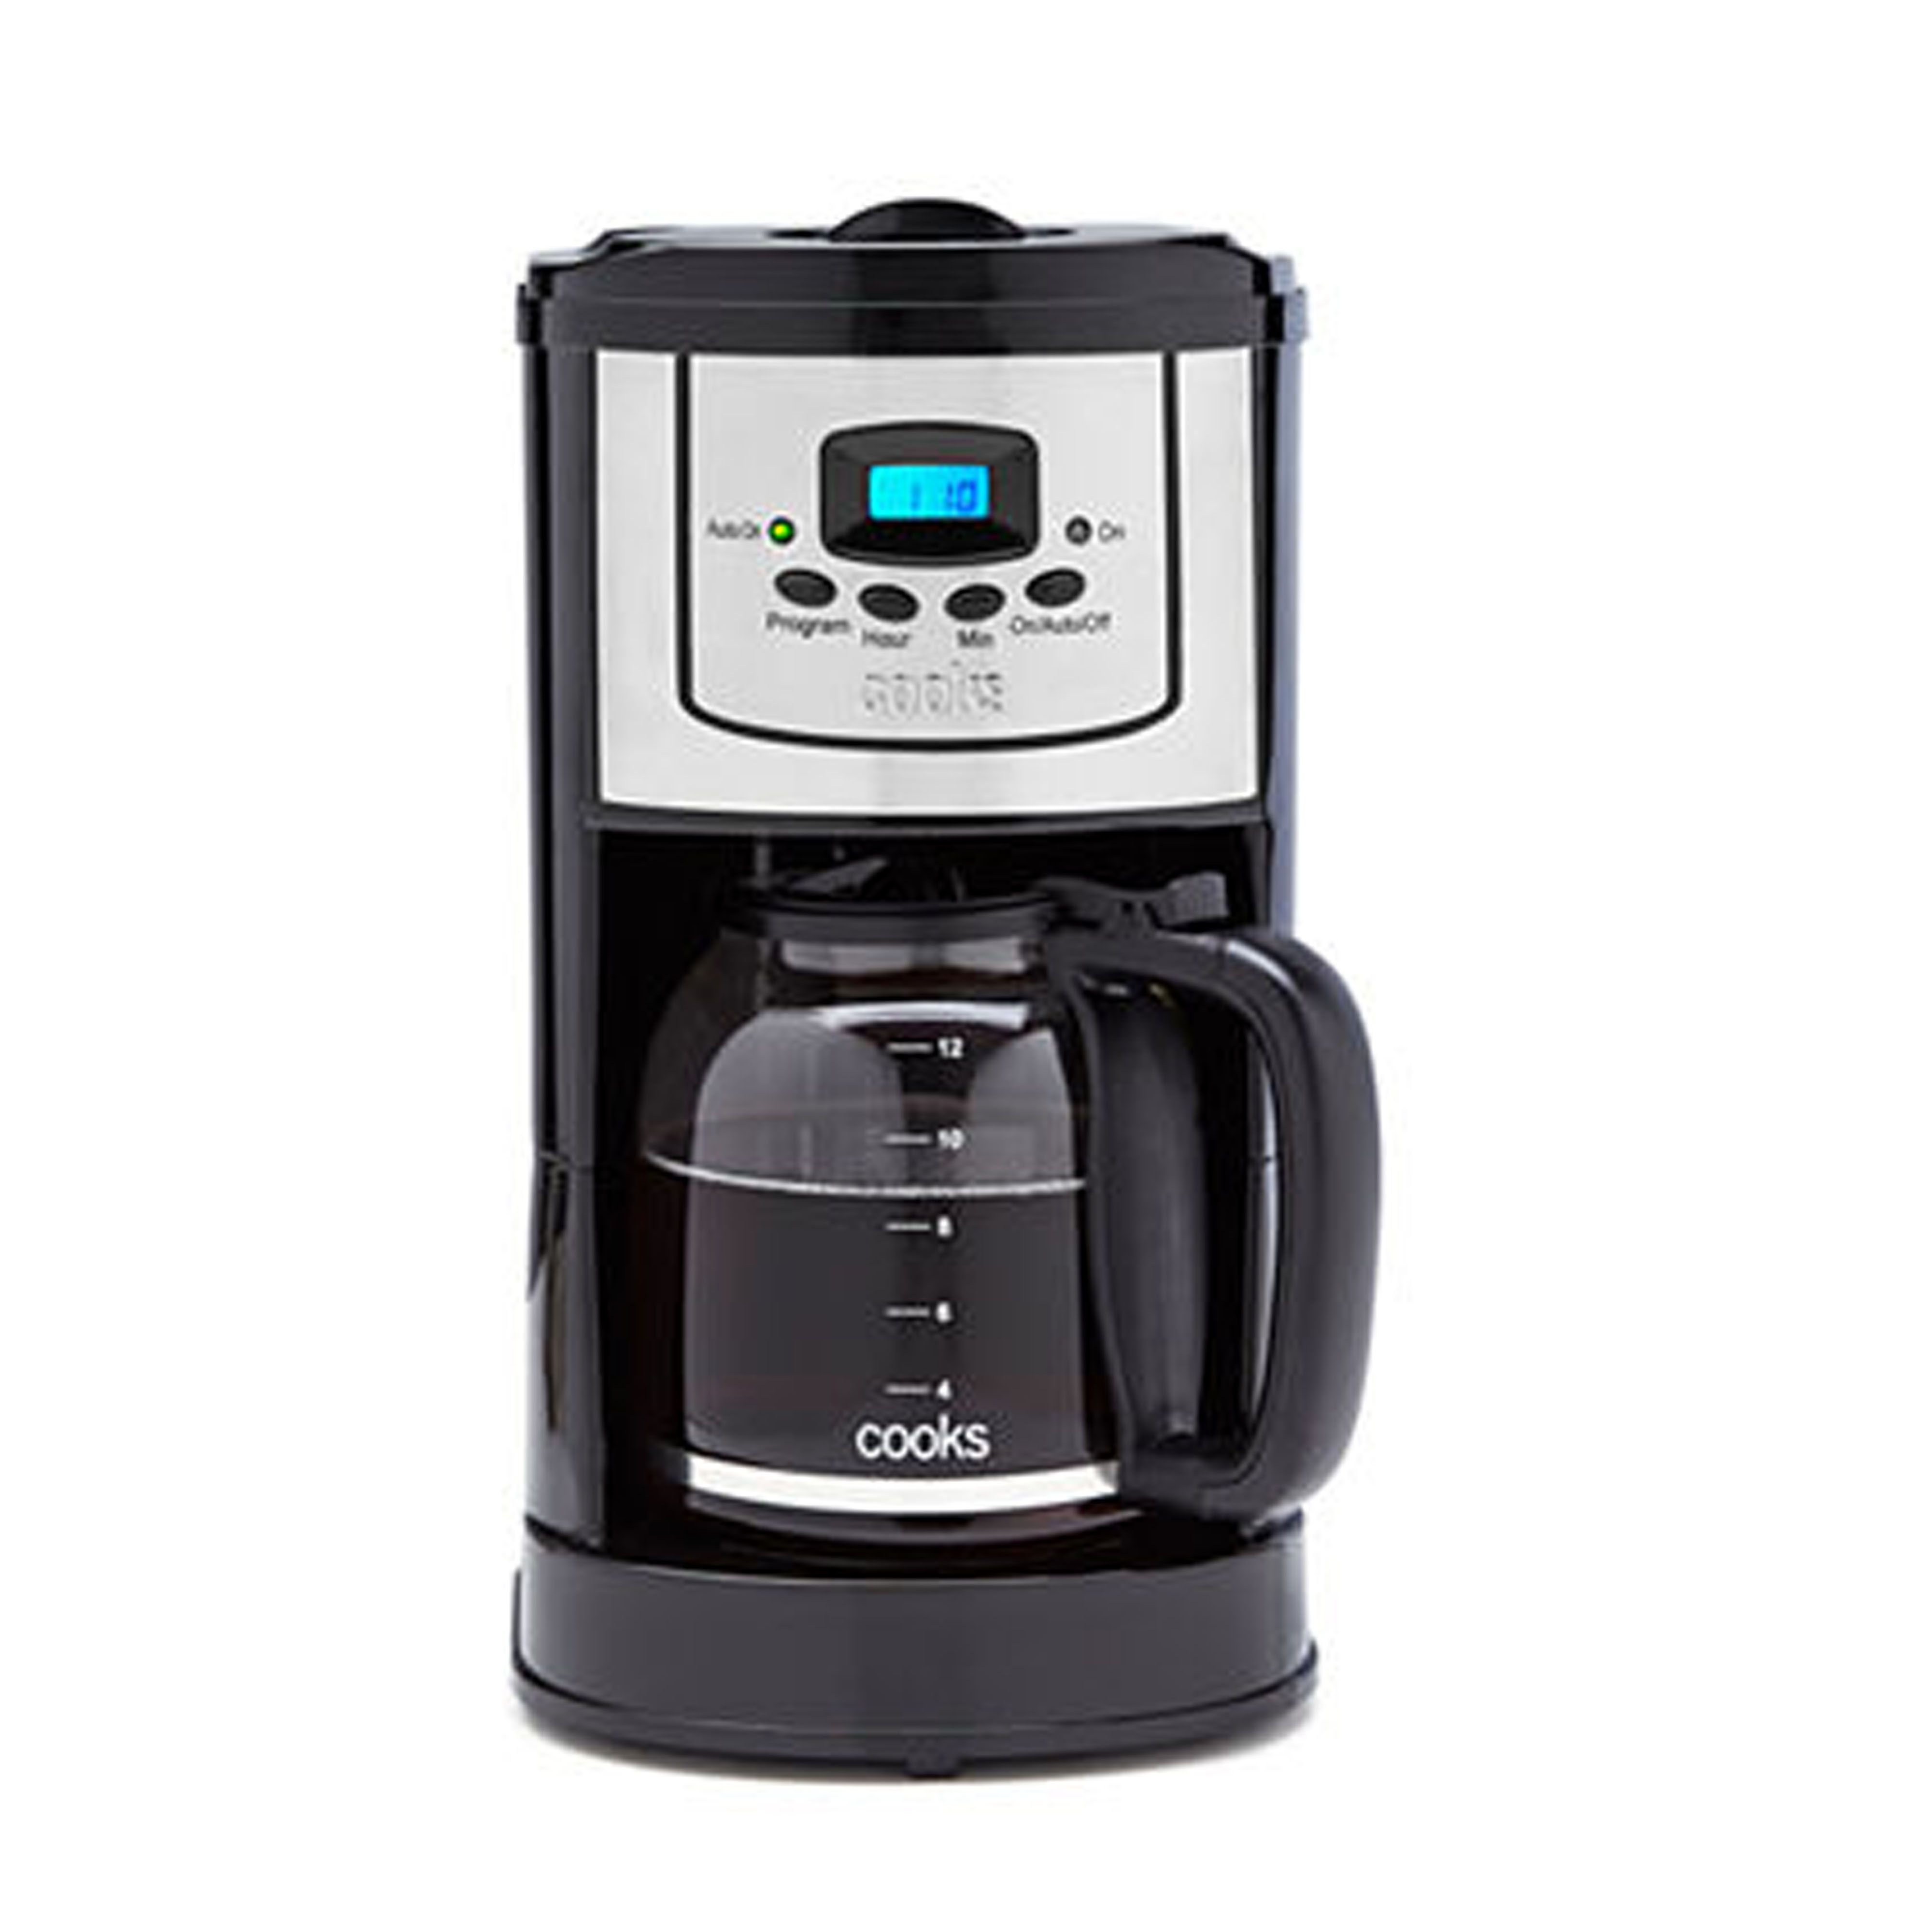 cooks 12 cup coffeemaker review price and features rh goodhousekeeping com Toaster Cooks Cooks Coffee Maker Brand